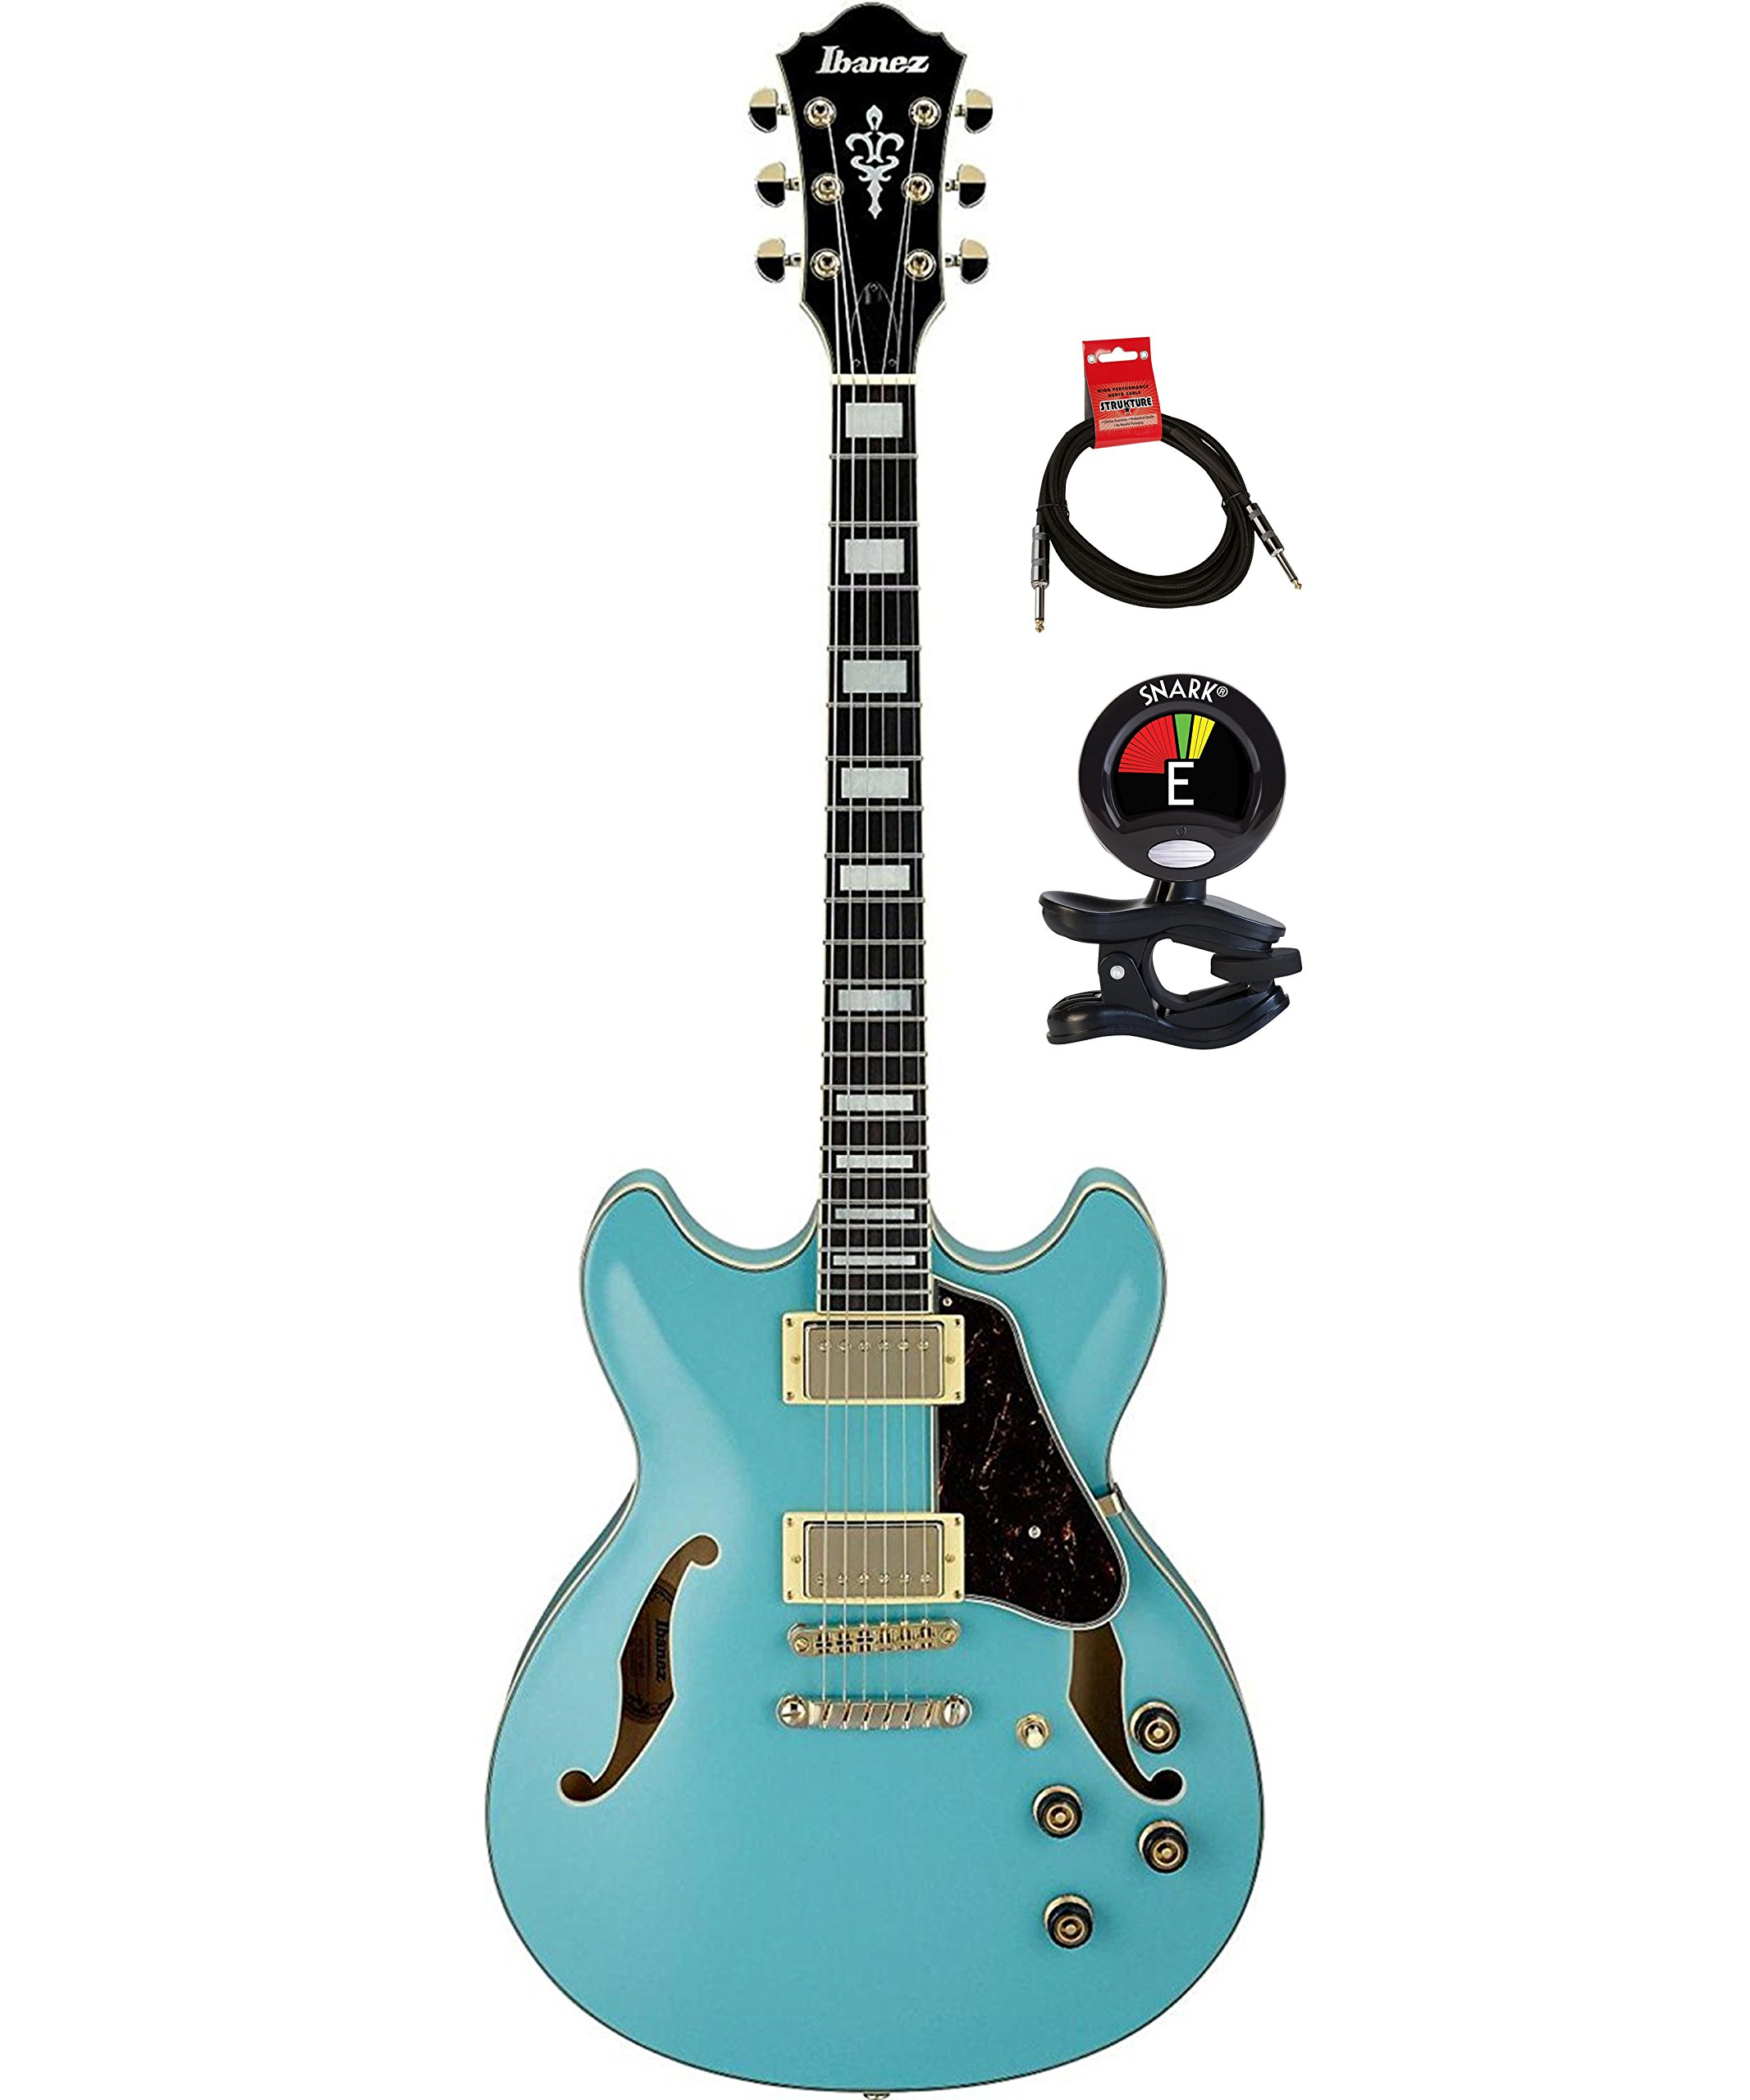 Cheap Ibanez AS73GMTB Artcore Semi Hollow Body 6 Strings Electric Guitar Package with Guitar Tuner and Instrument Cable - Mint Blue Black Friday & Cyber Monday 2019